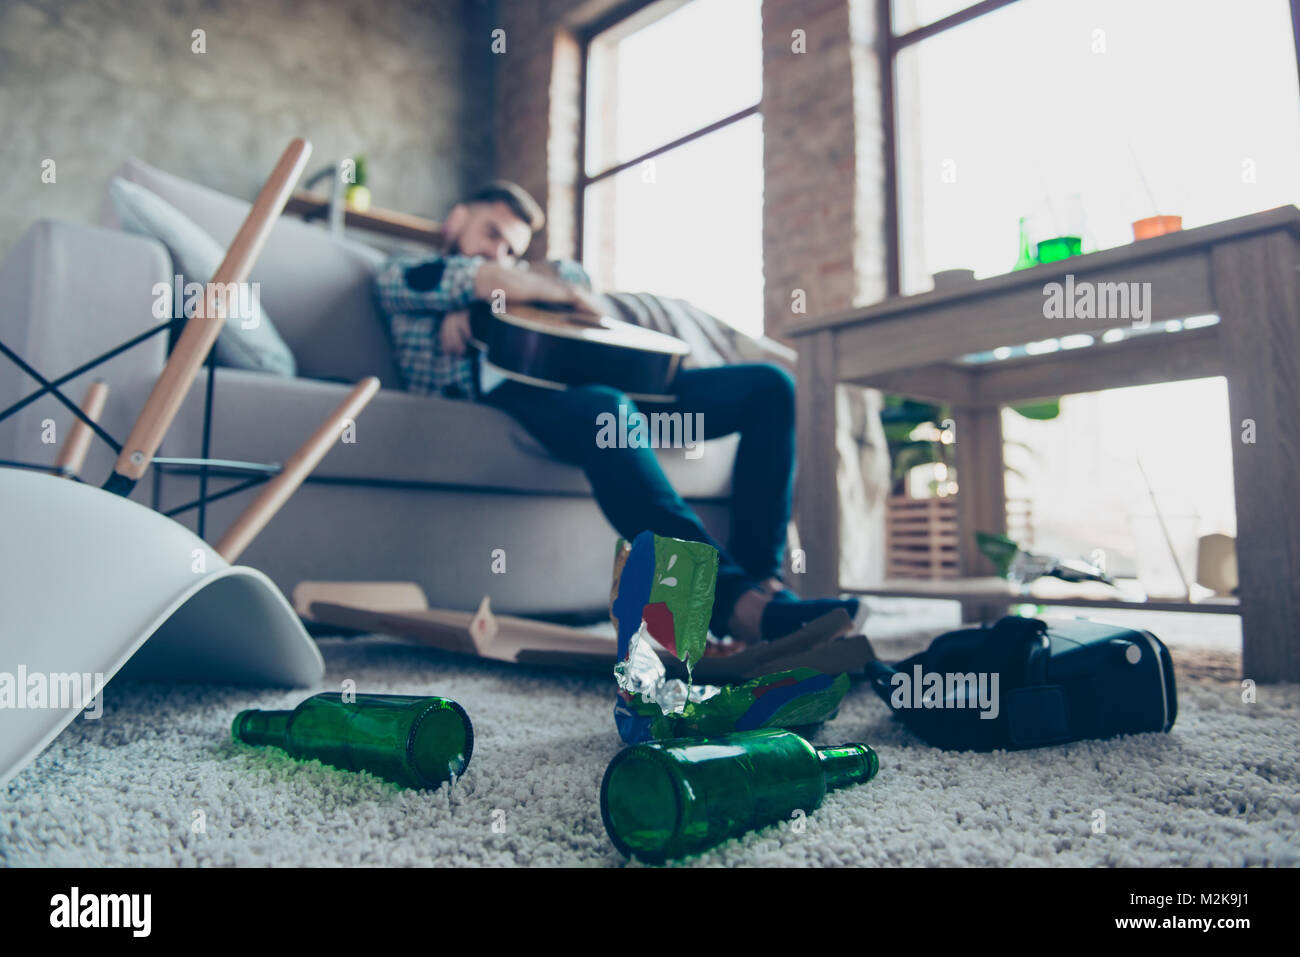 Man having hangover after stag party, sleeping, holding guitar, with chaos in the messy room after night party - Stock Image